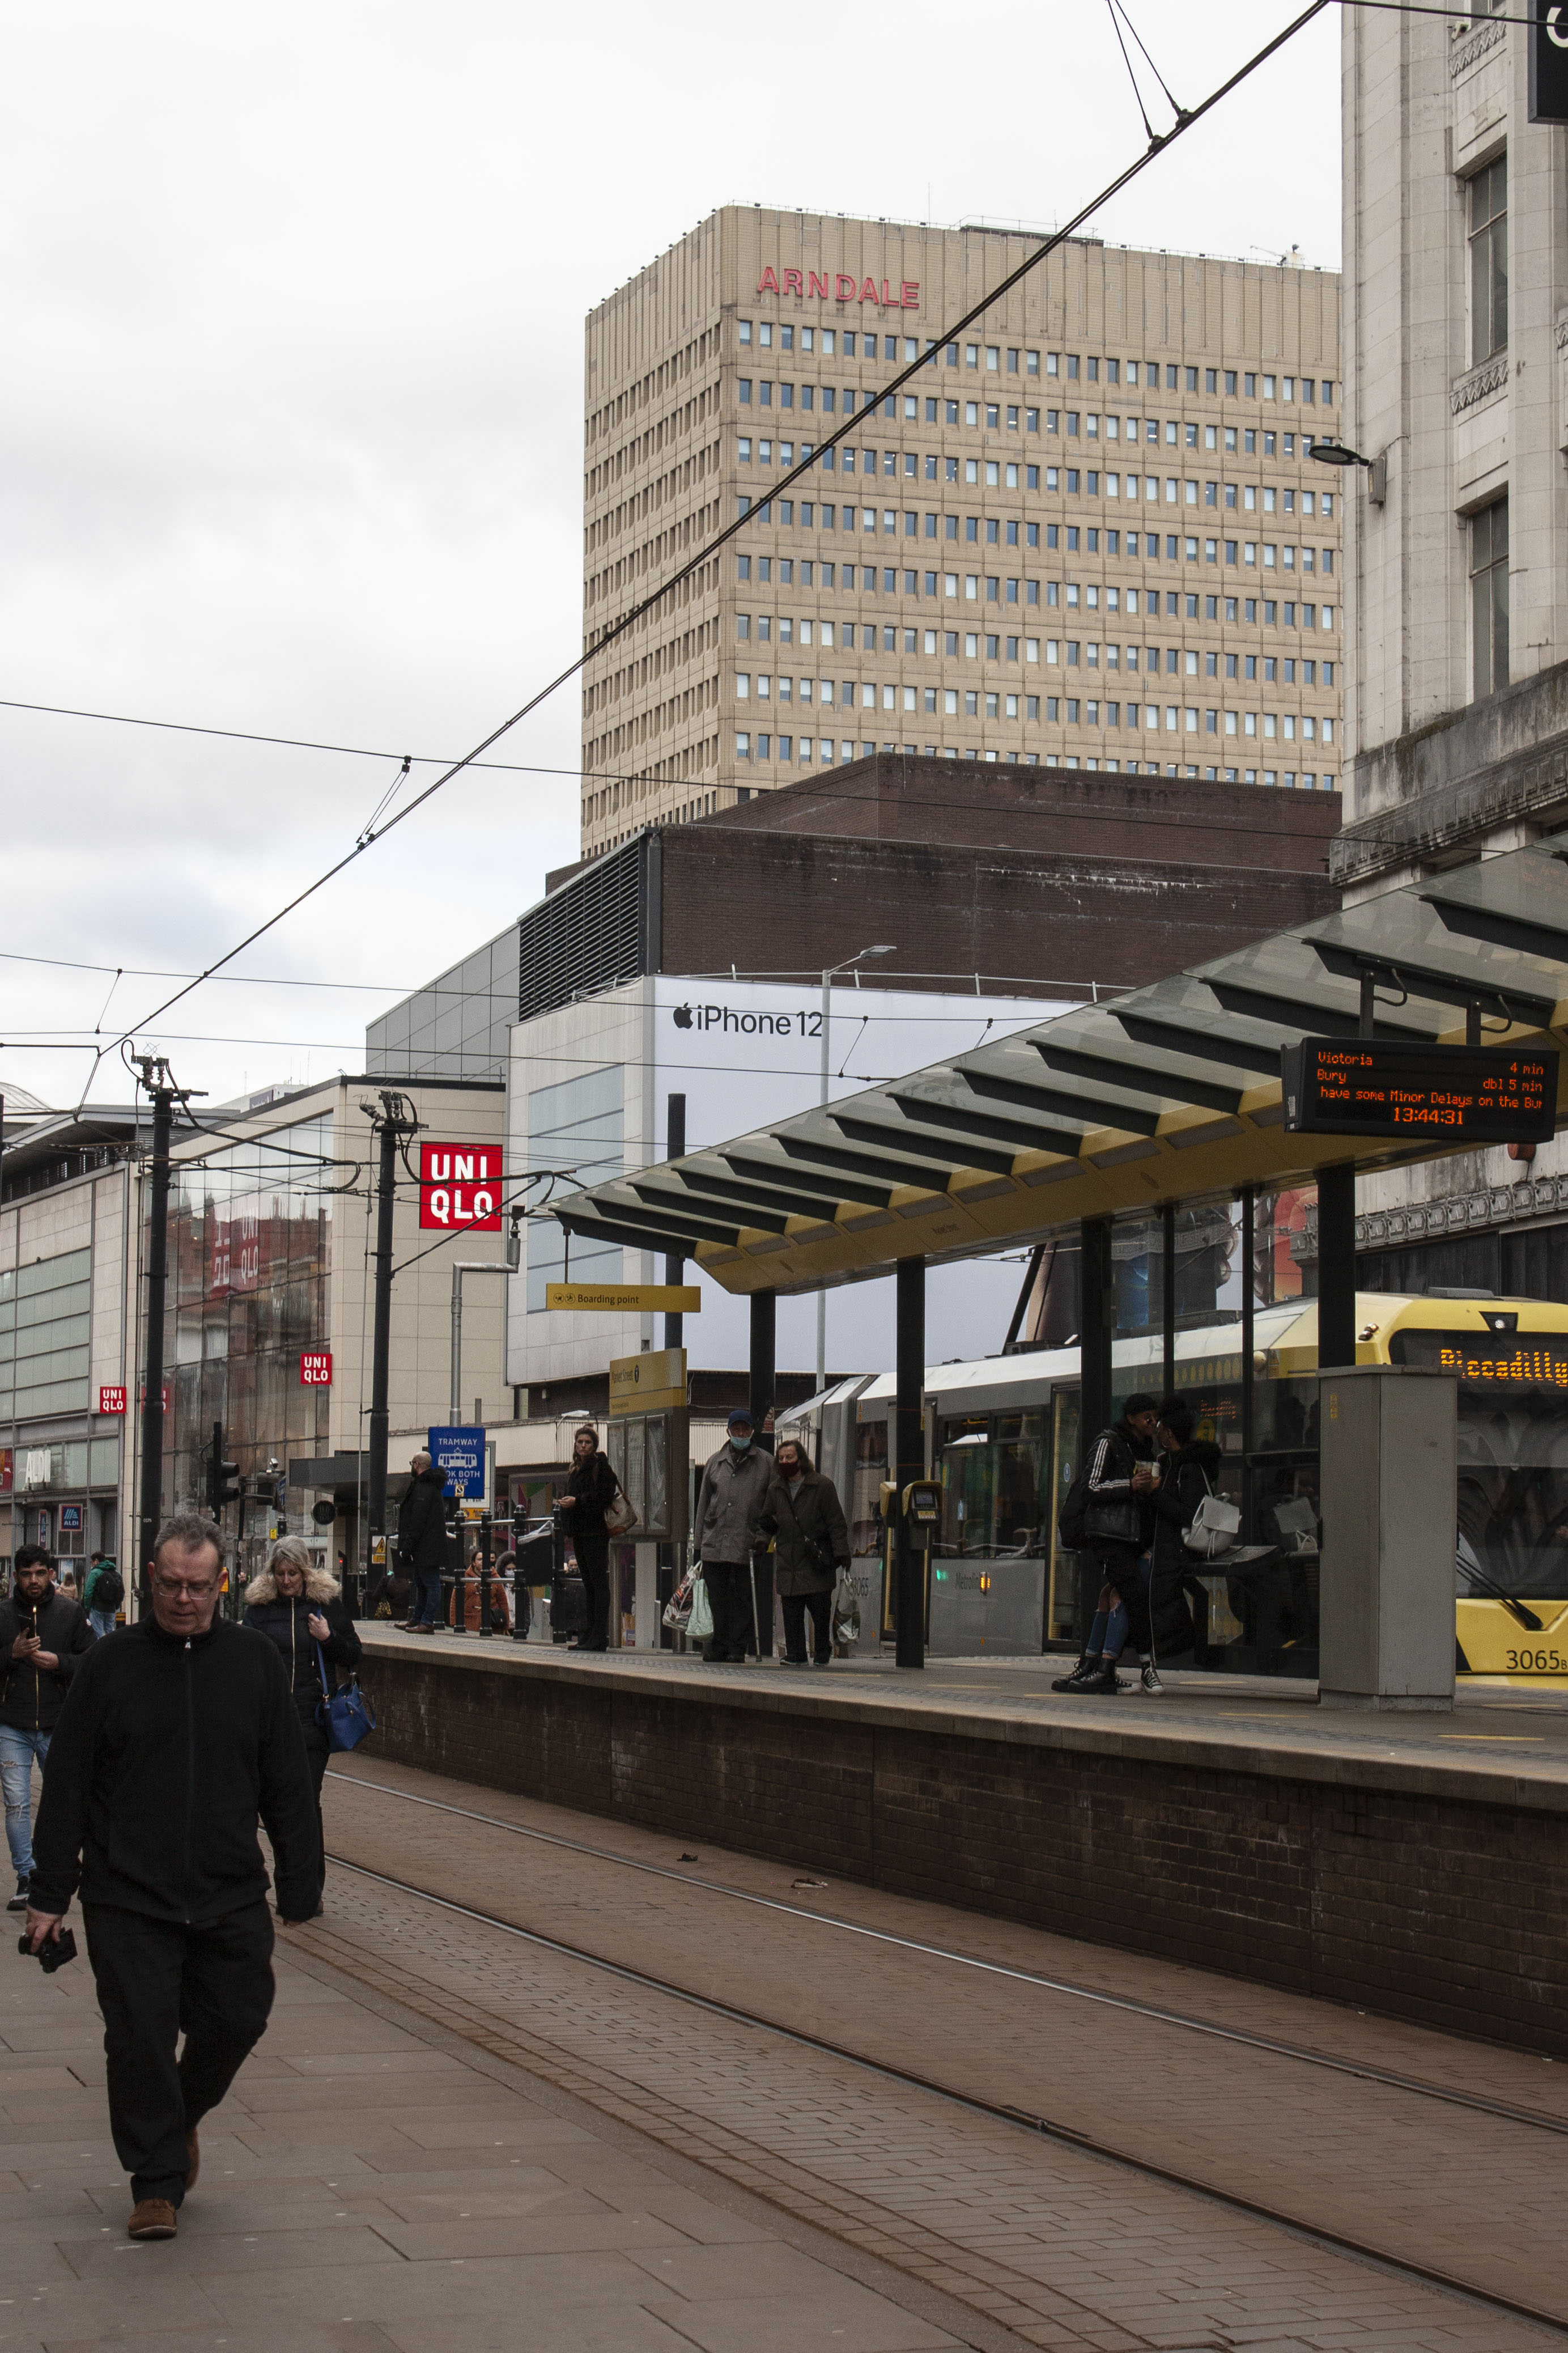 Busy tram stop in city centre with skyline visible